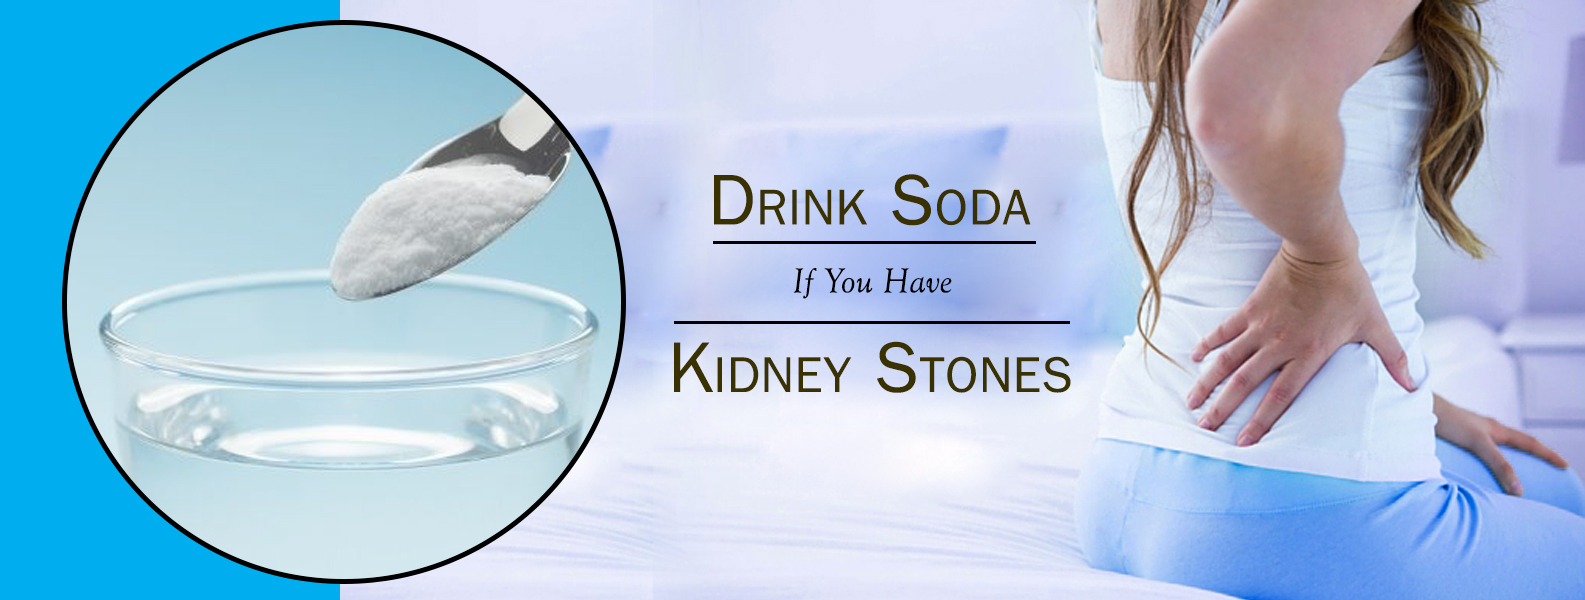 Can you drink soda water if you have kidney stones?